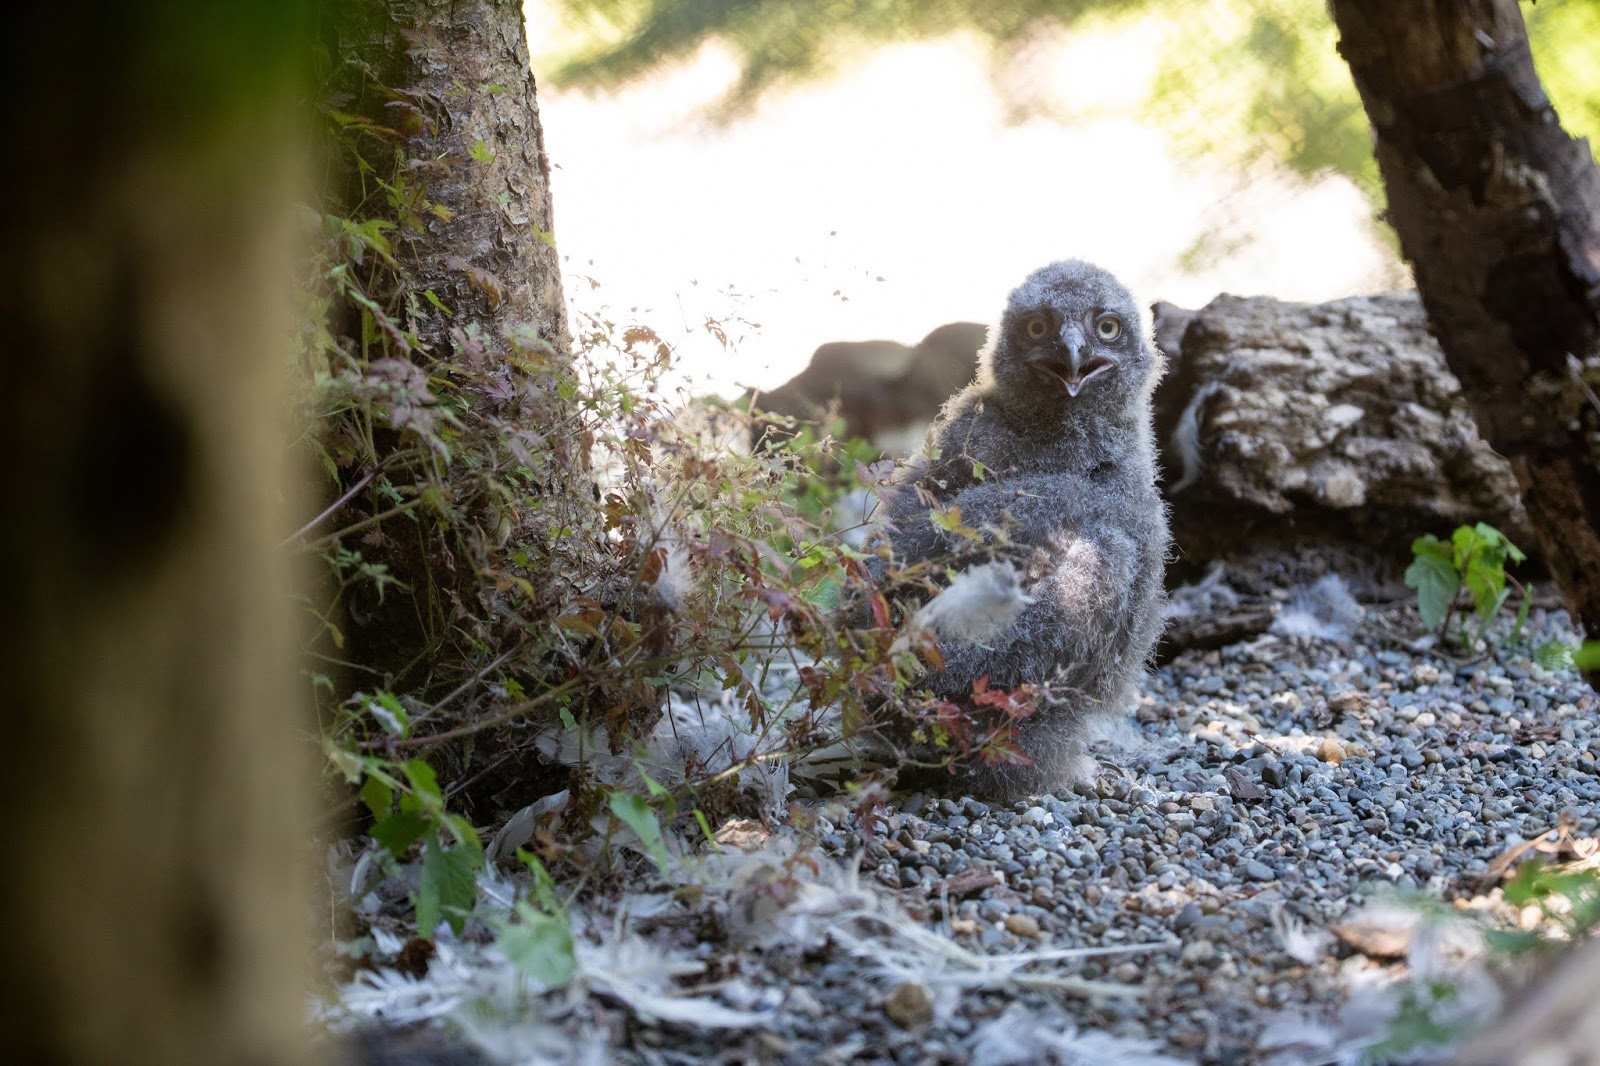 Woodland Park Zoo welcomed a pair of snowy owl chicks